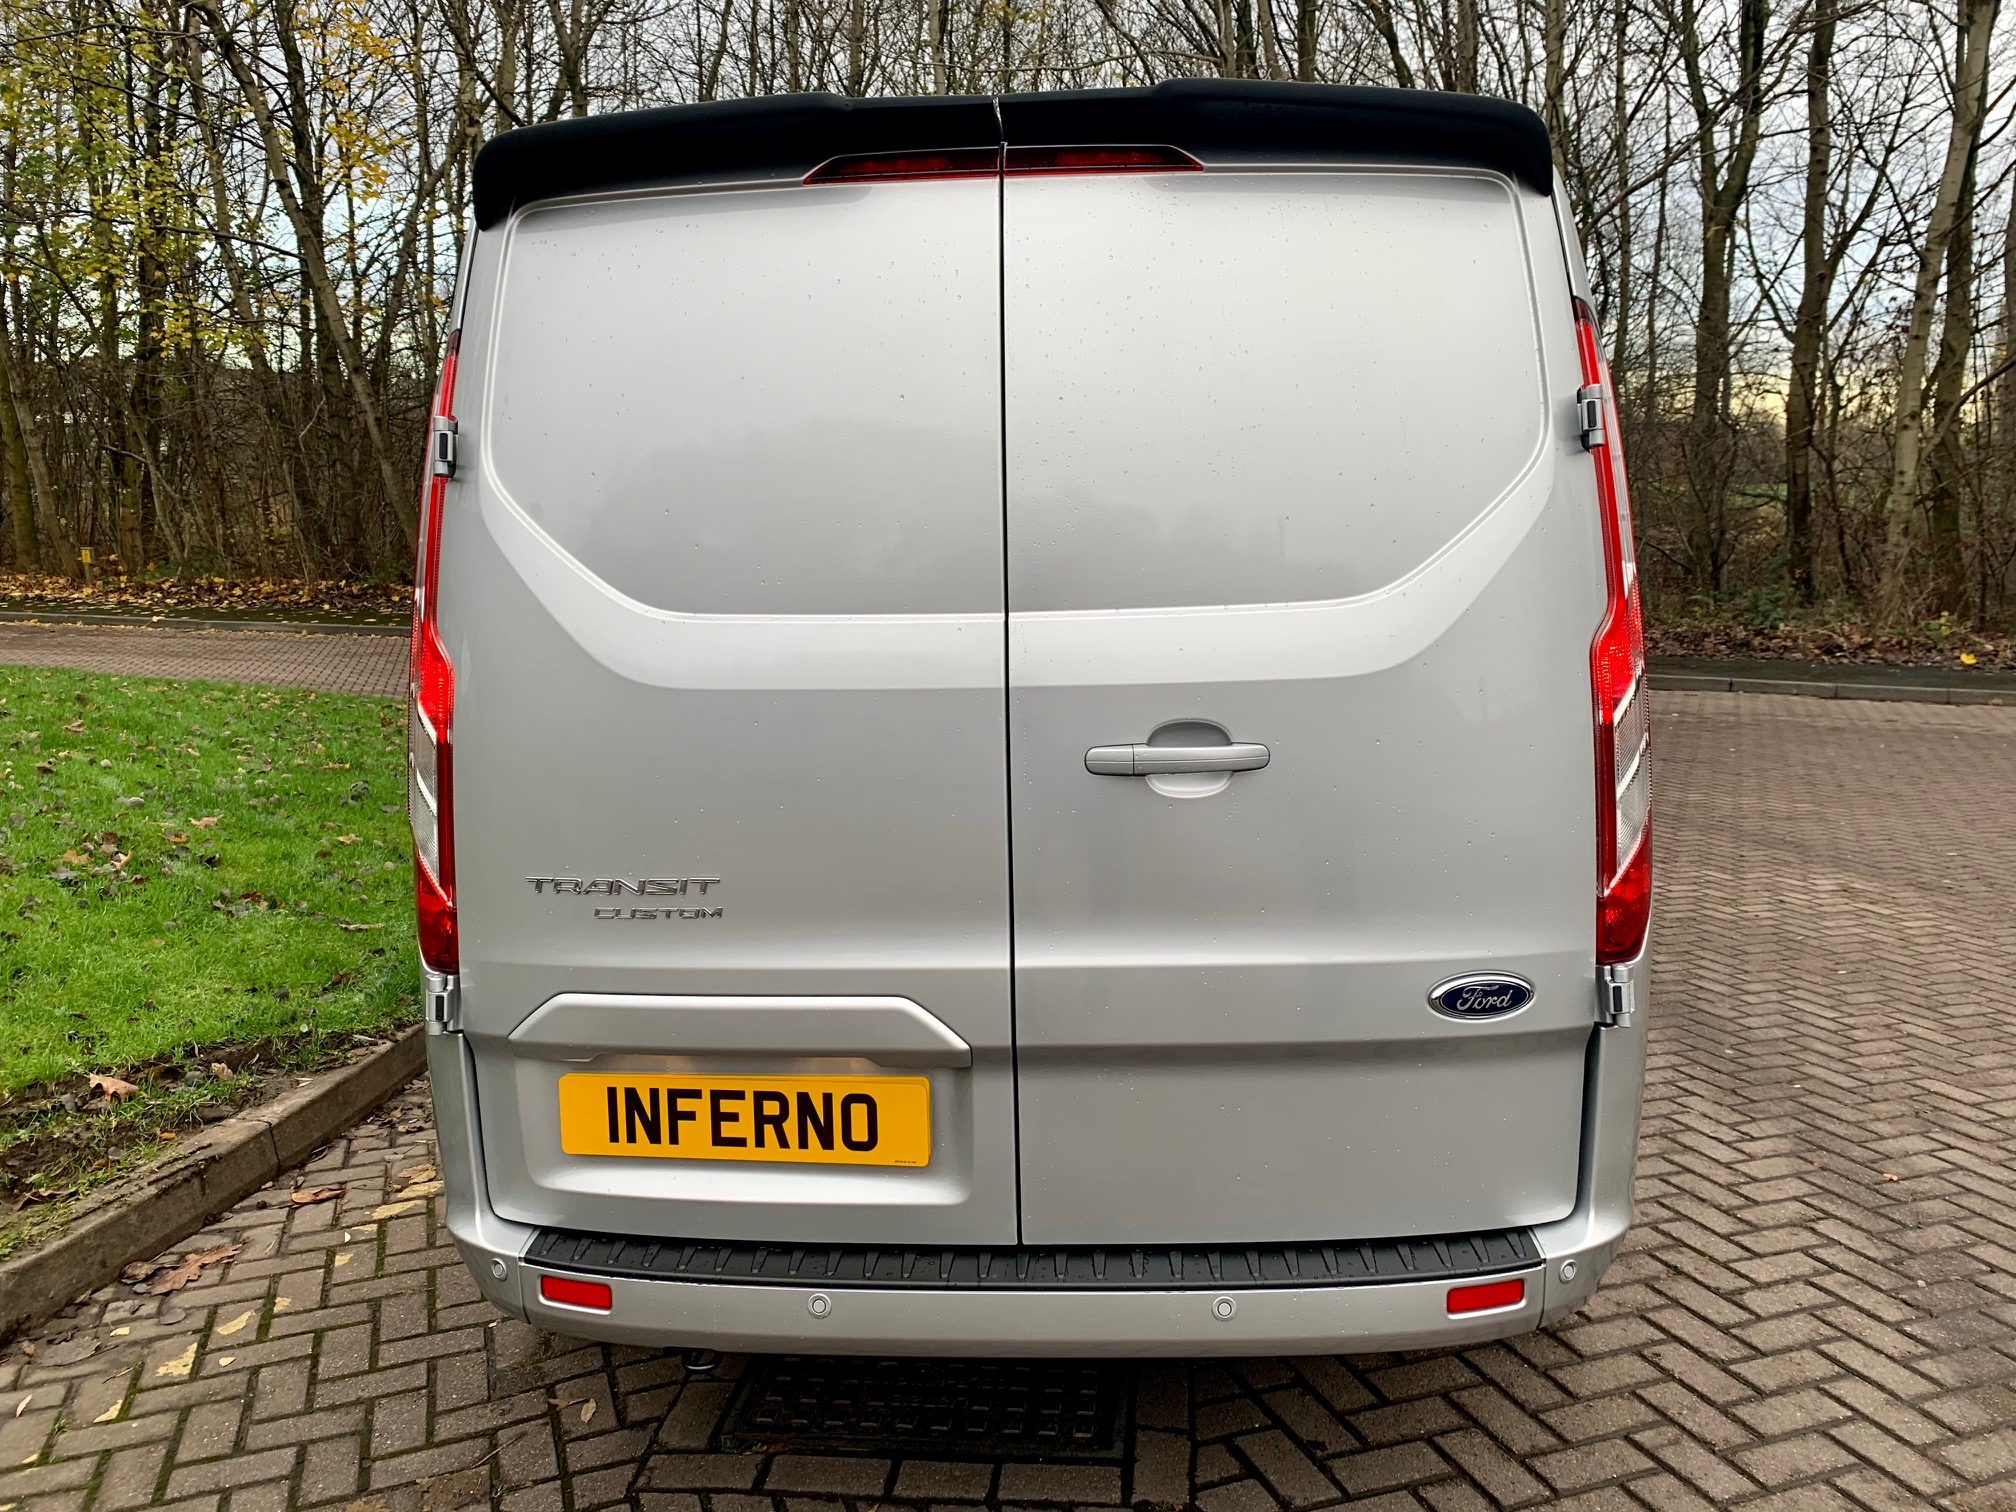 IMG_8182.jpg - 300 L1 DIESEL FWD 2.0 EcoBlue 170ps Low Roof Limited Van Auto Inferno